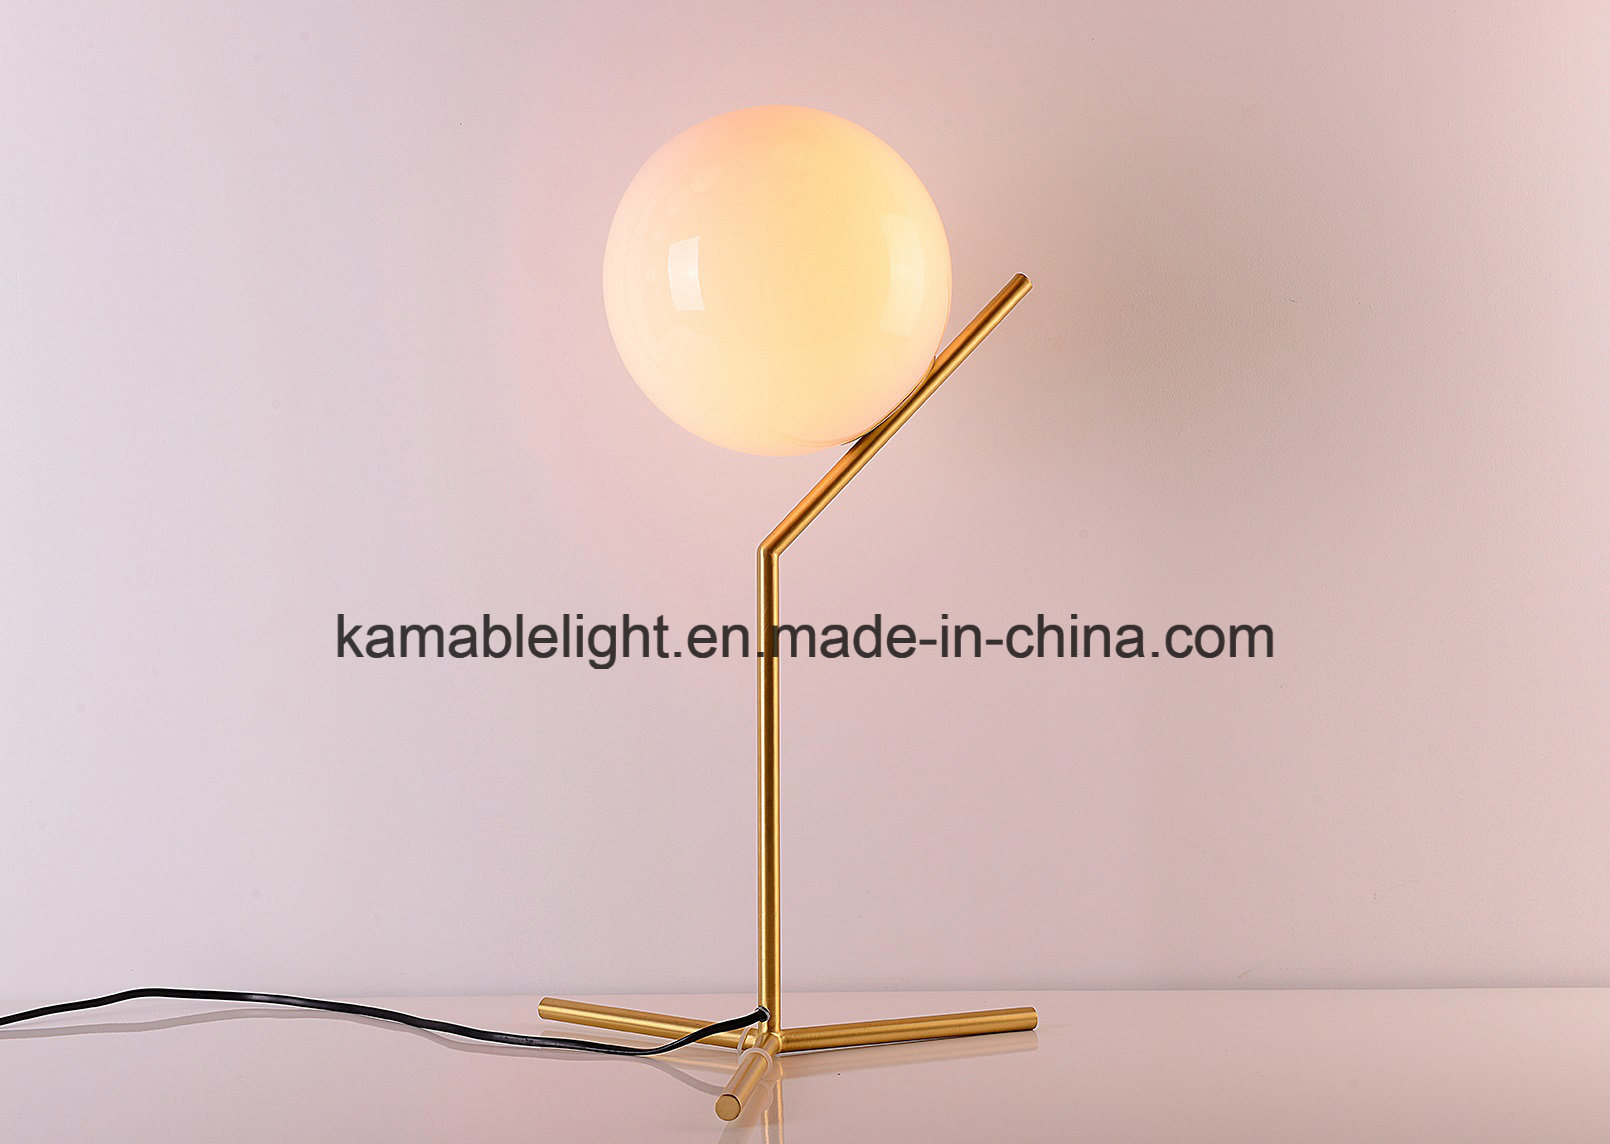 Newest Modern Design Ball Desk Lamp (KAMT8108-1B-200)